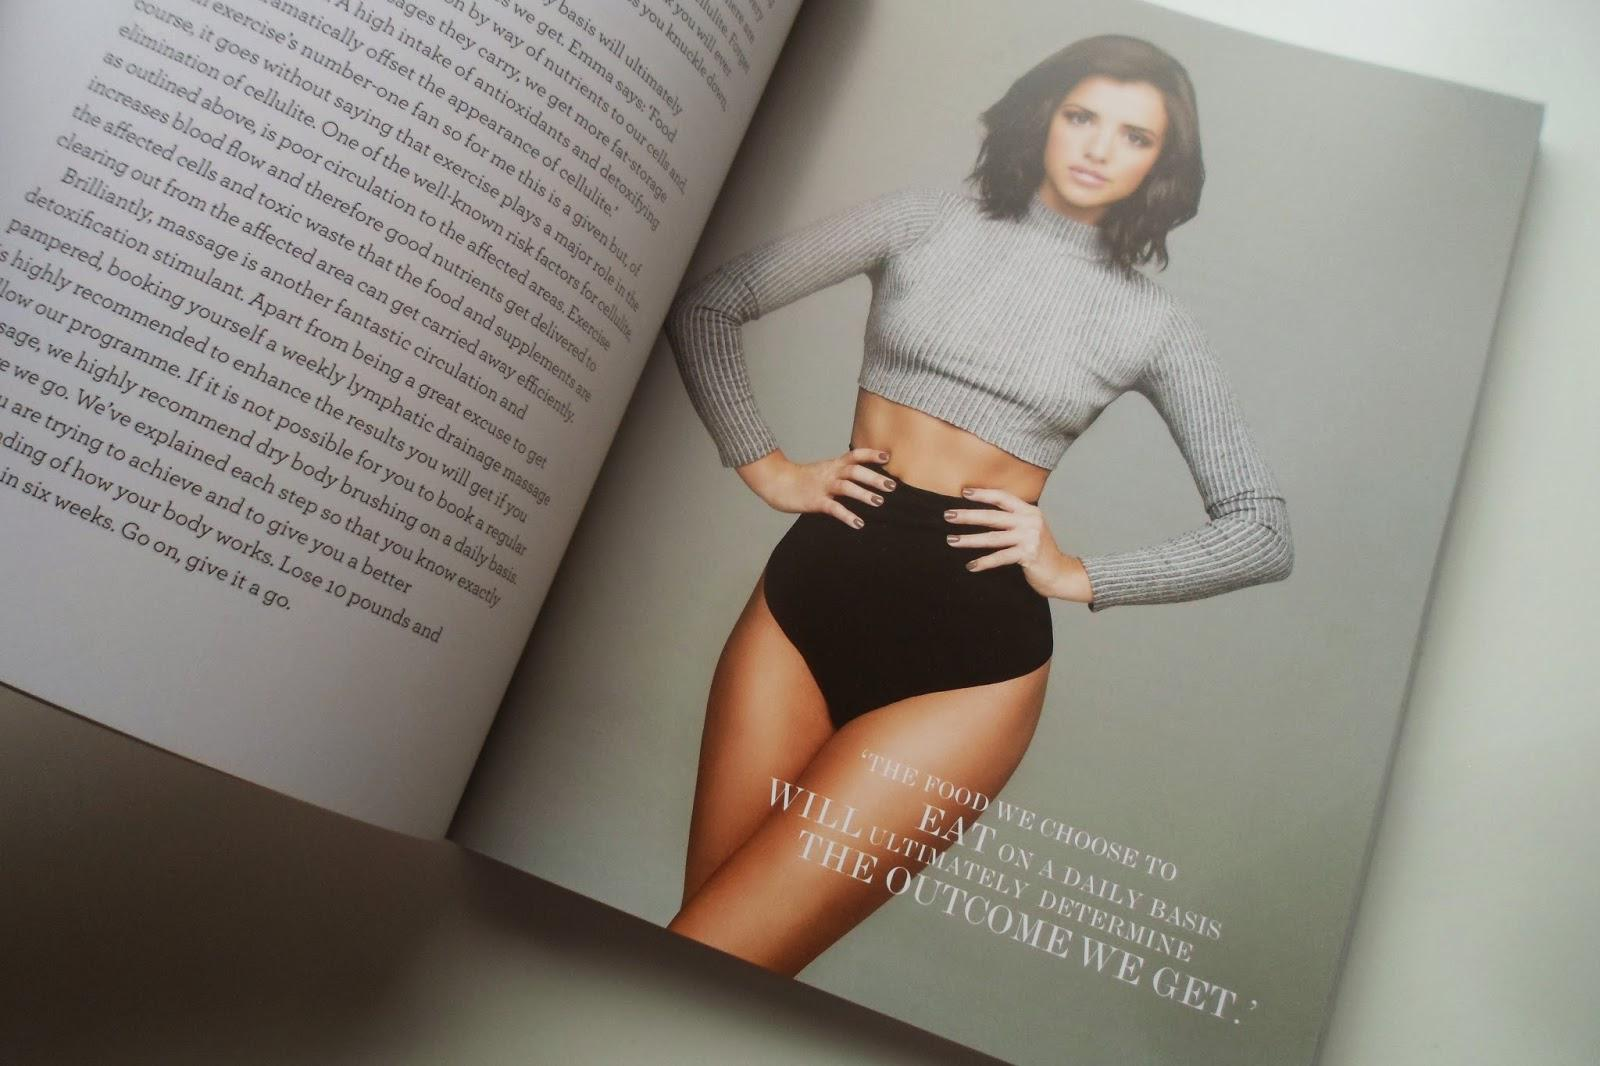 RT @KirstieLouiseS: Be Body Beautiful by Lucy Meck : My Thoughts & Review http://t.co/dH4lDKpMP6 @lucy_meck #lbloggers http://t.co/wOs73Kcx…